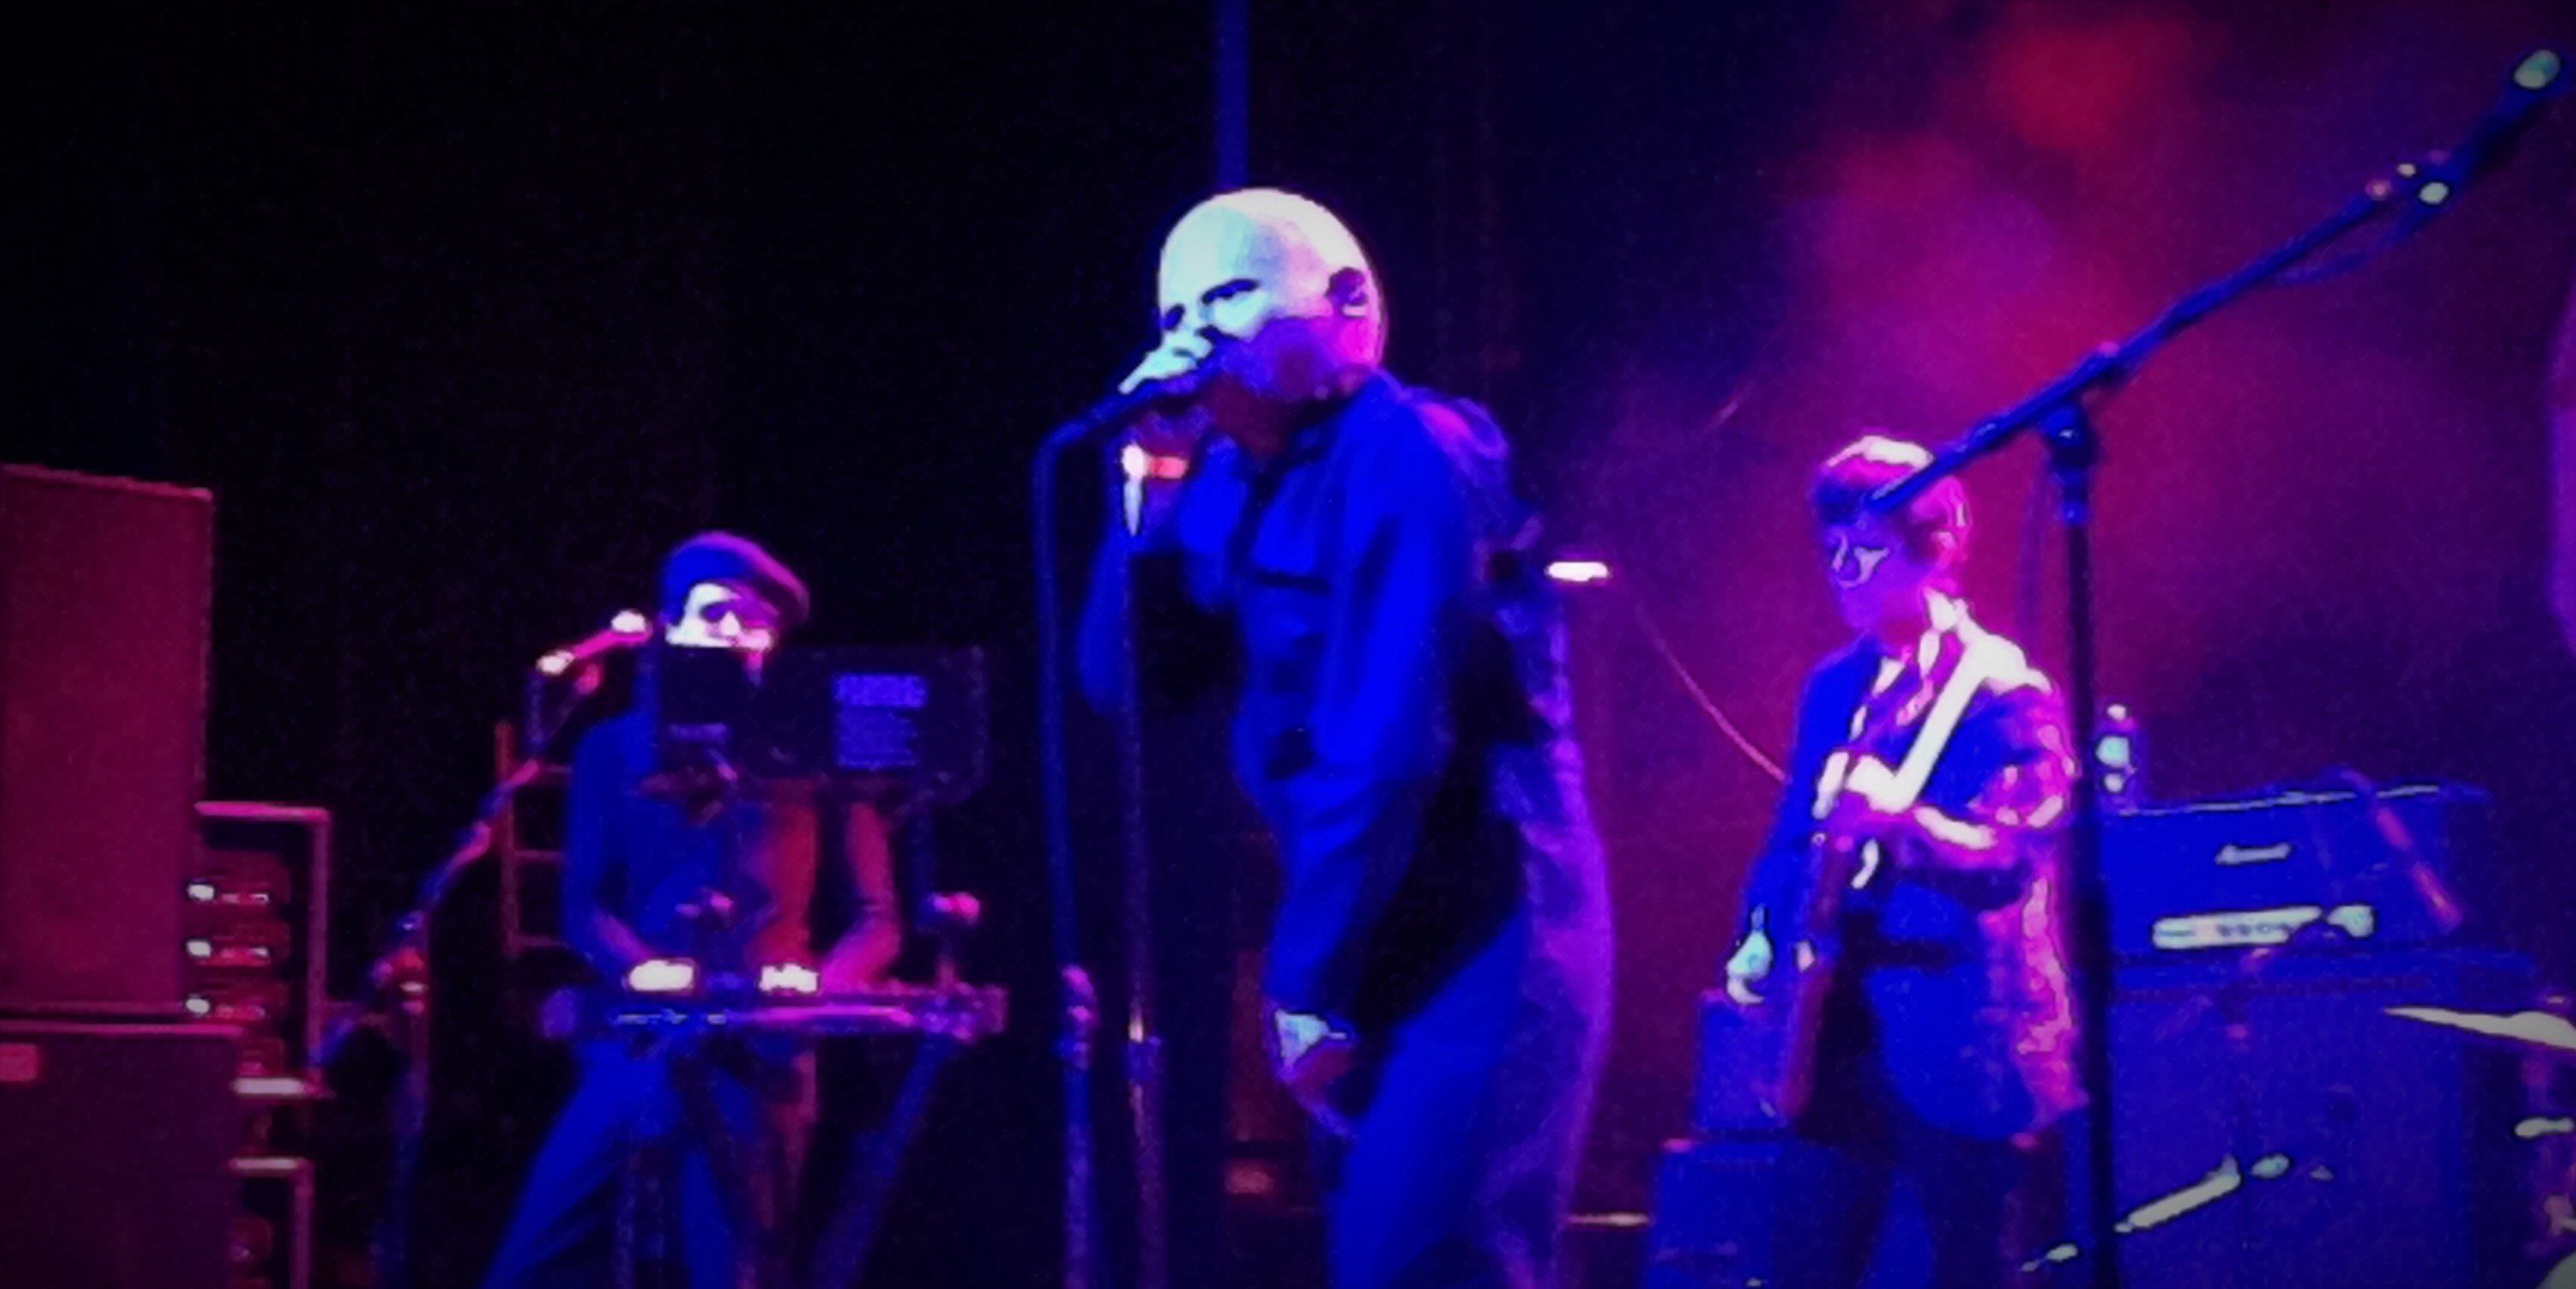 Ty Segall & The Muggers: The Man Behind The Mask [Concert Review]